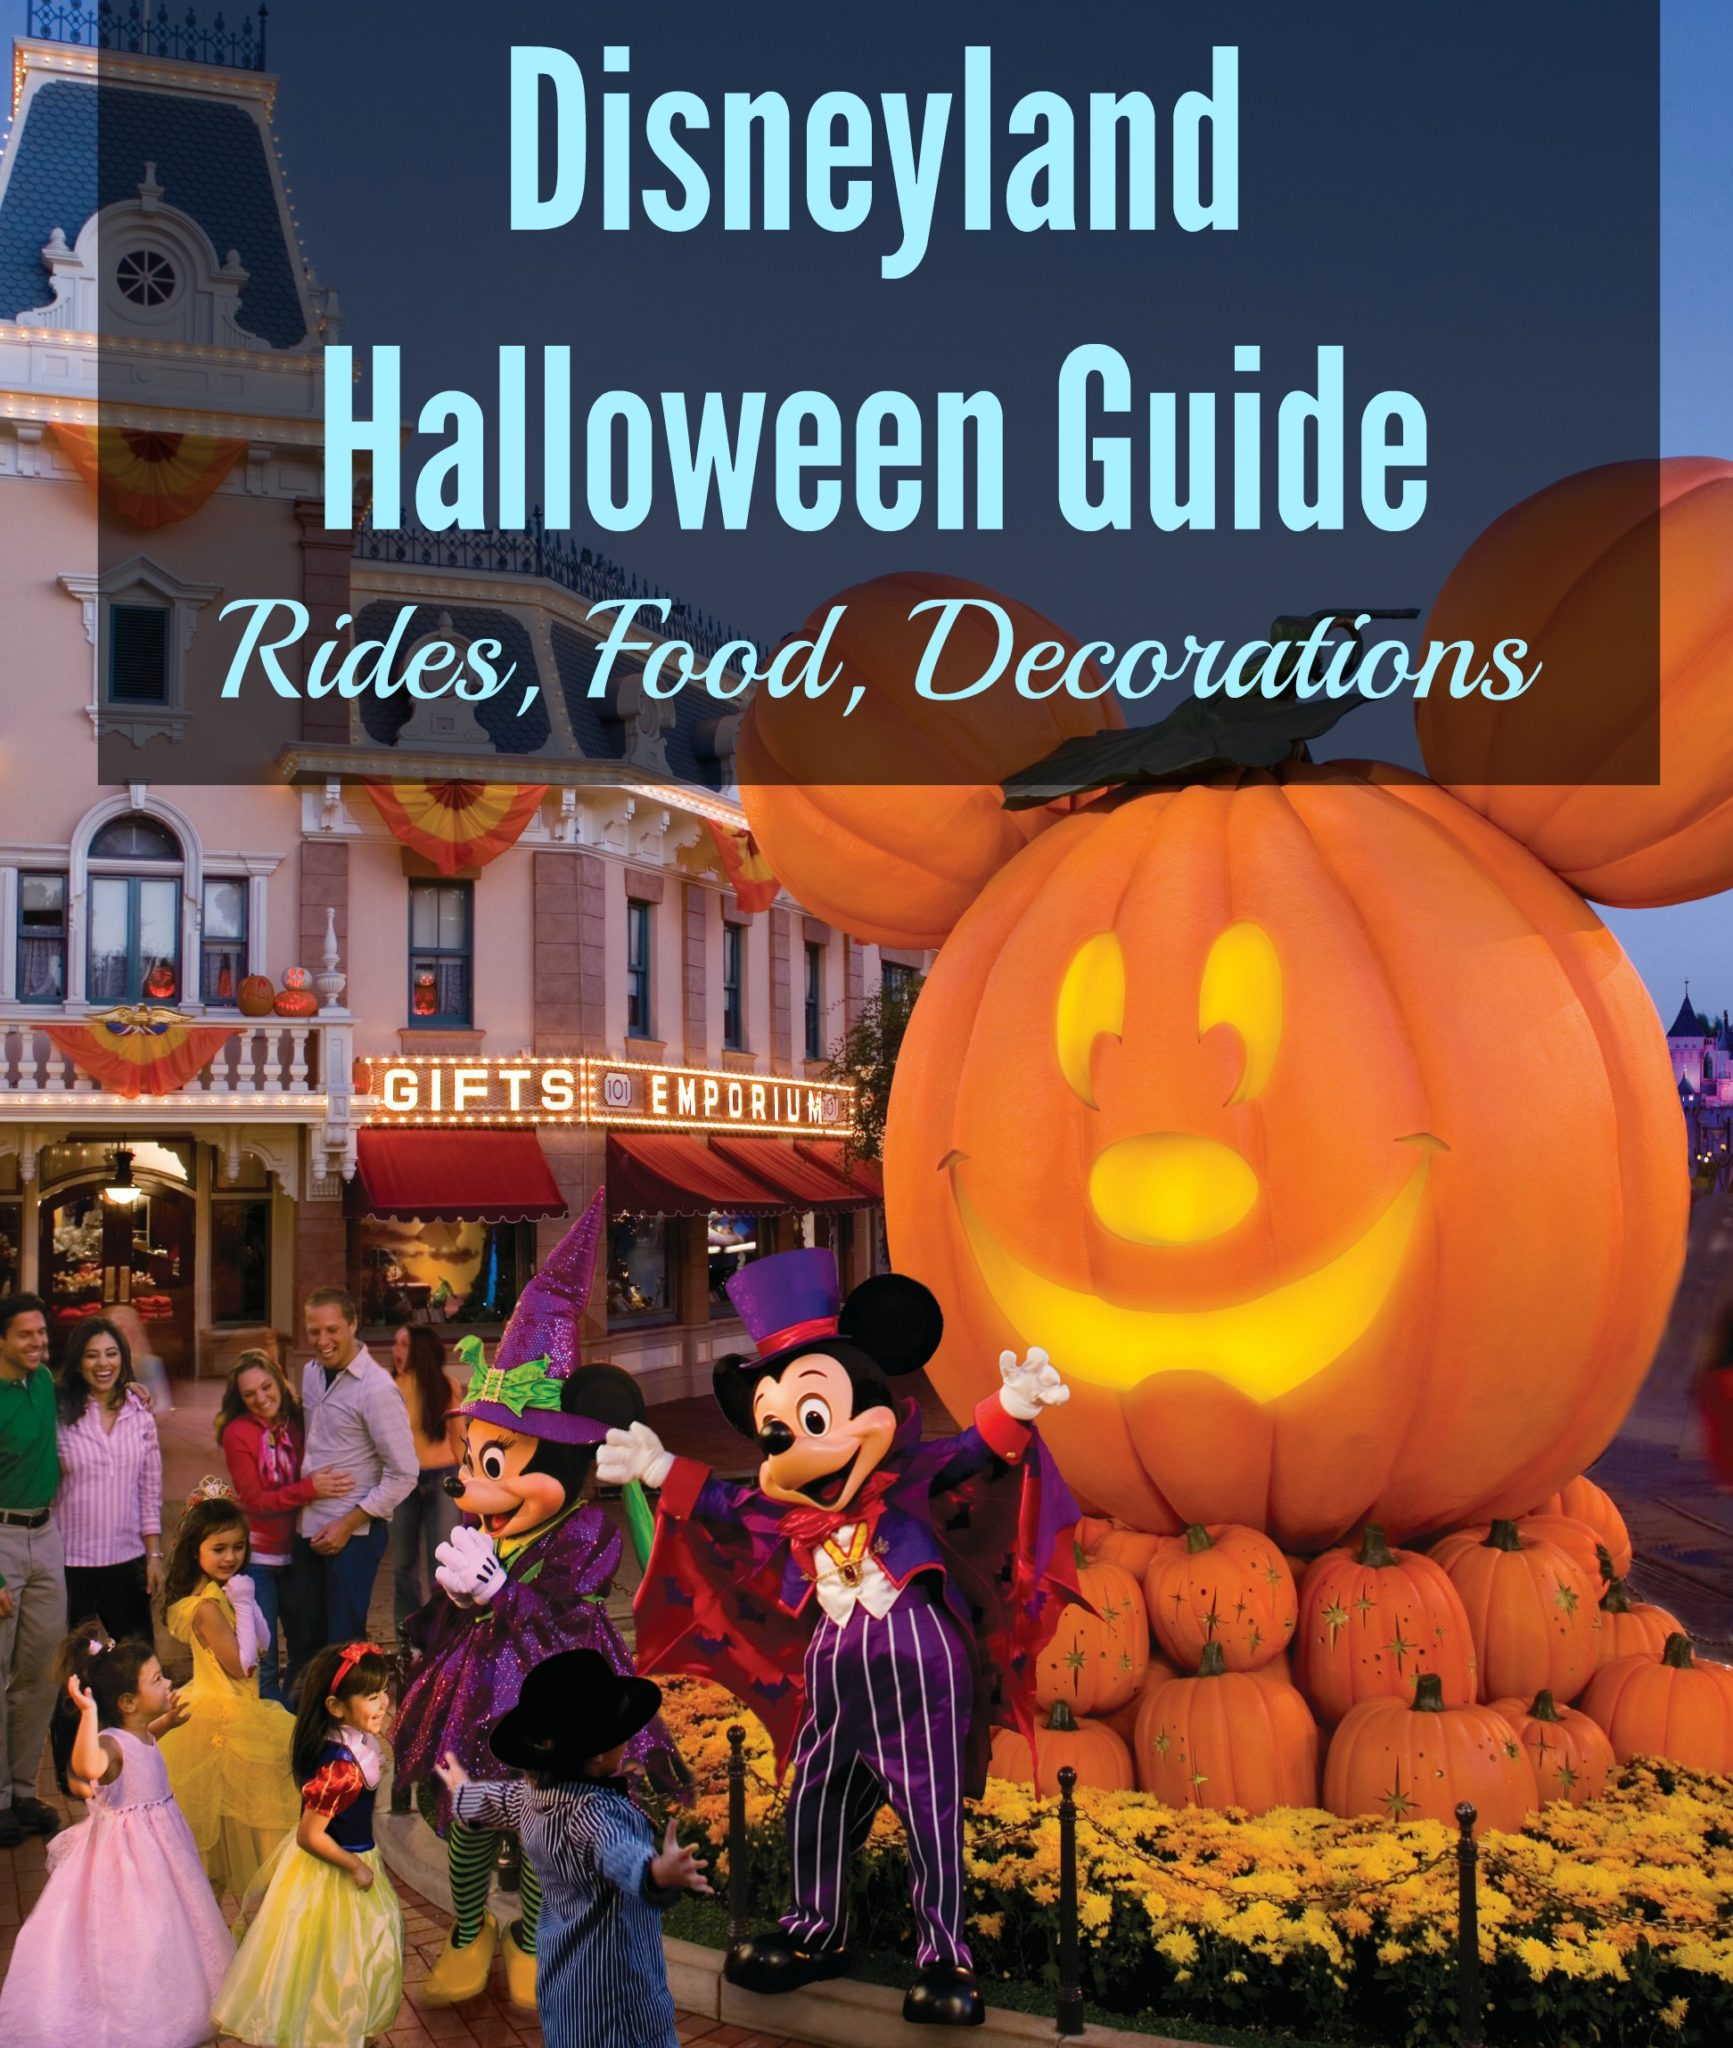 2020 Halloween Disneyland And California Adventure Foodie Map Disneyland Halloween 2020 Guide: Rides, Food, Decorations